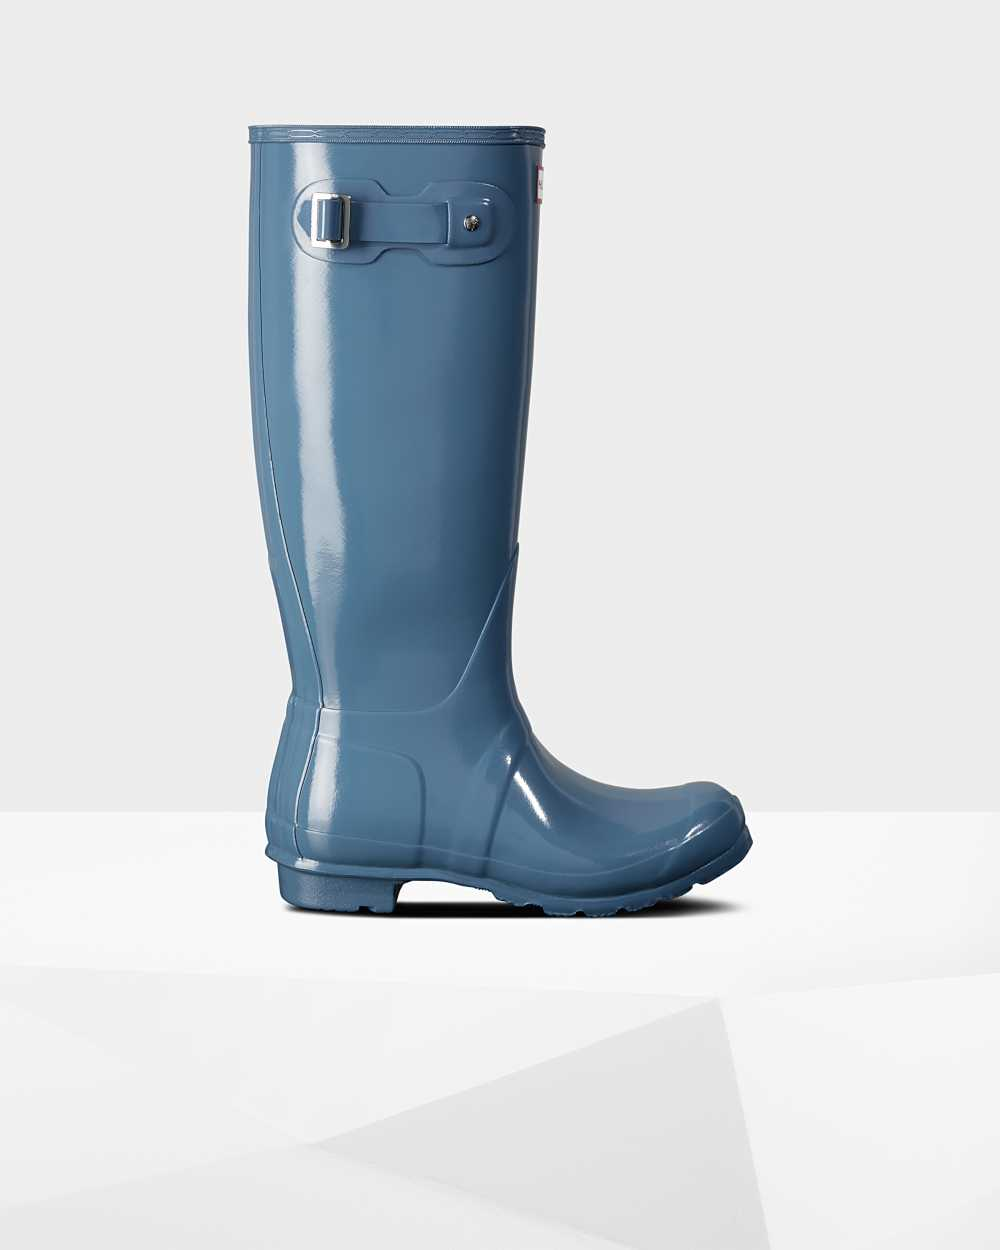 Hunter Original Tall Gloss Womens Tall Wellington Rain Boots In Blue Australia (OZNV-92871)